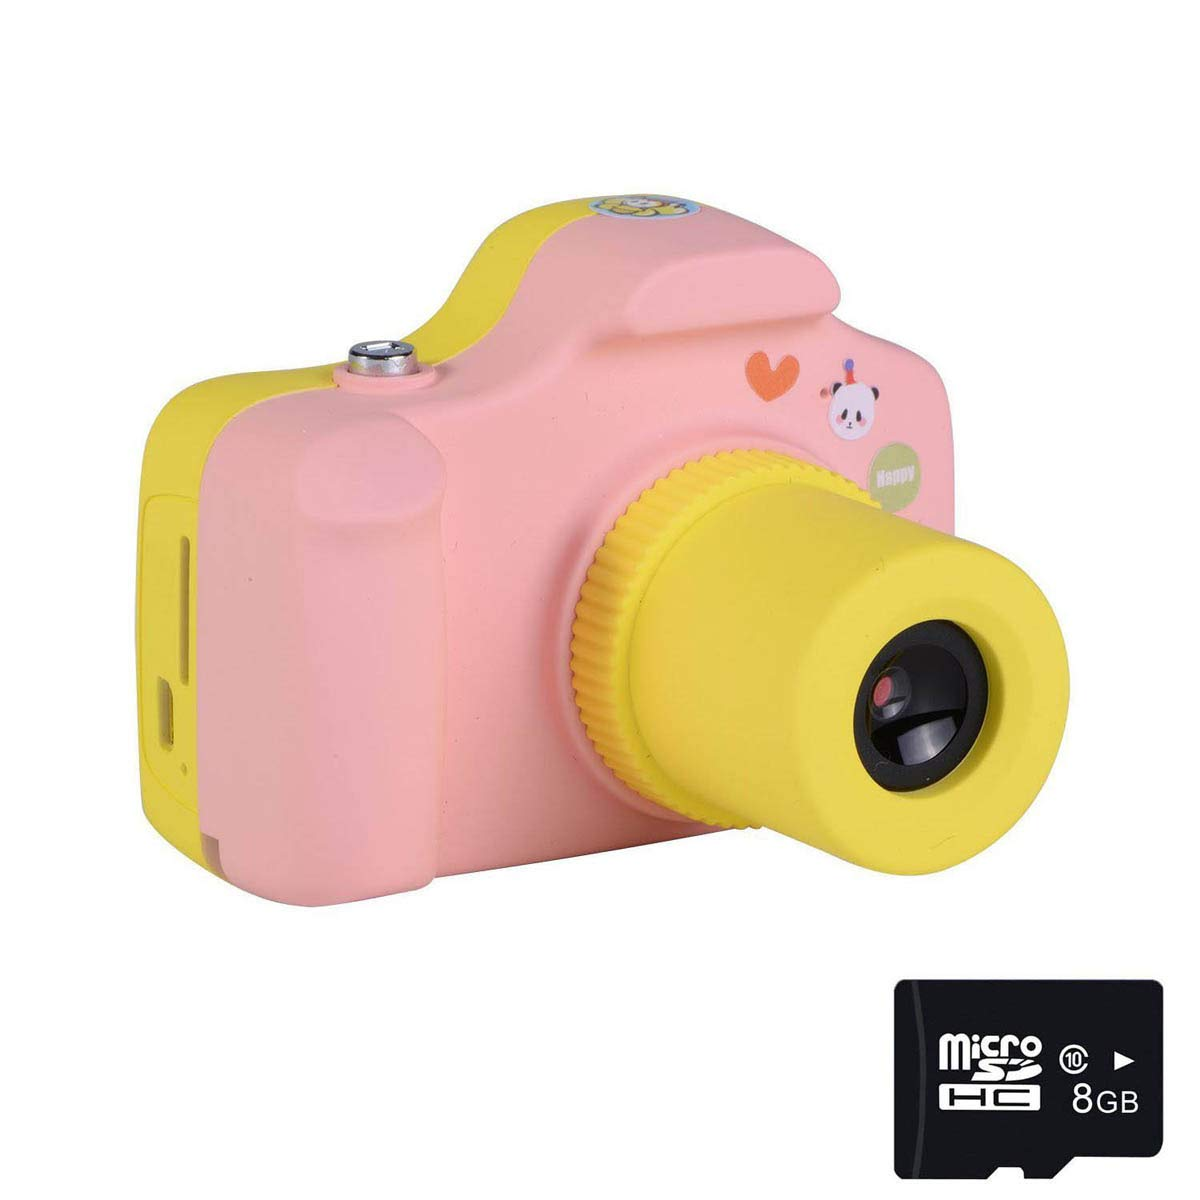 PANNOVO YT001 Mini 1.5 Inch Screen Children Kids Digital Camera with 8GB Cards(Pink) by PANNOVO (Image #1)